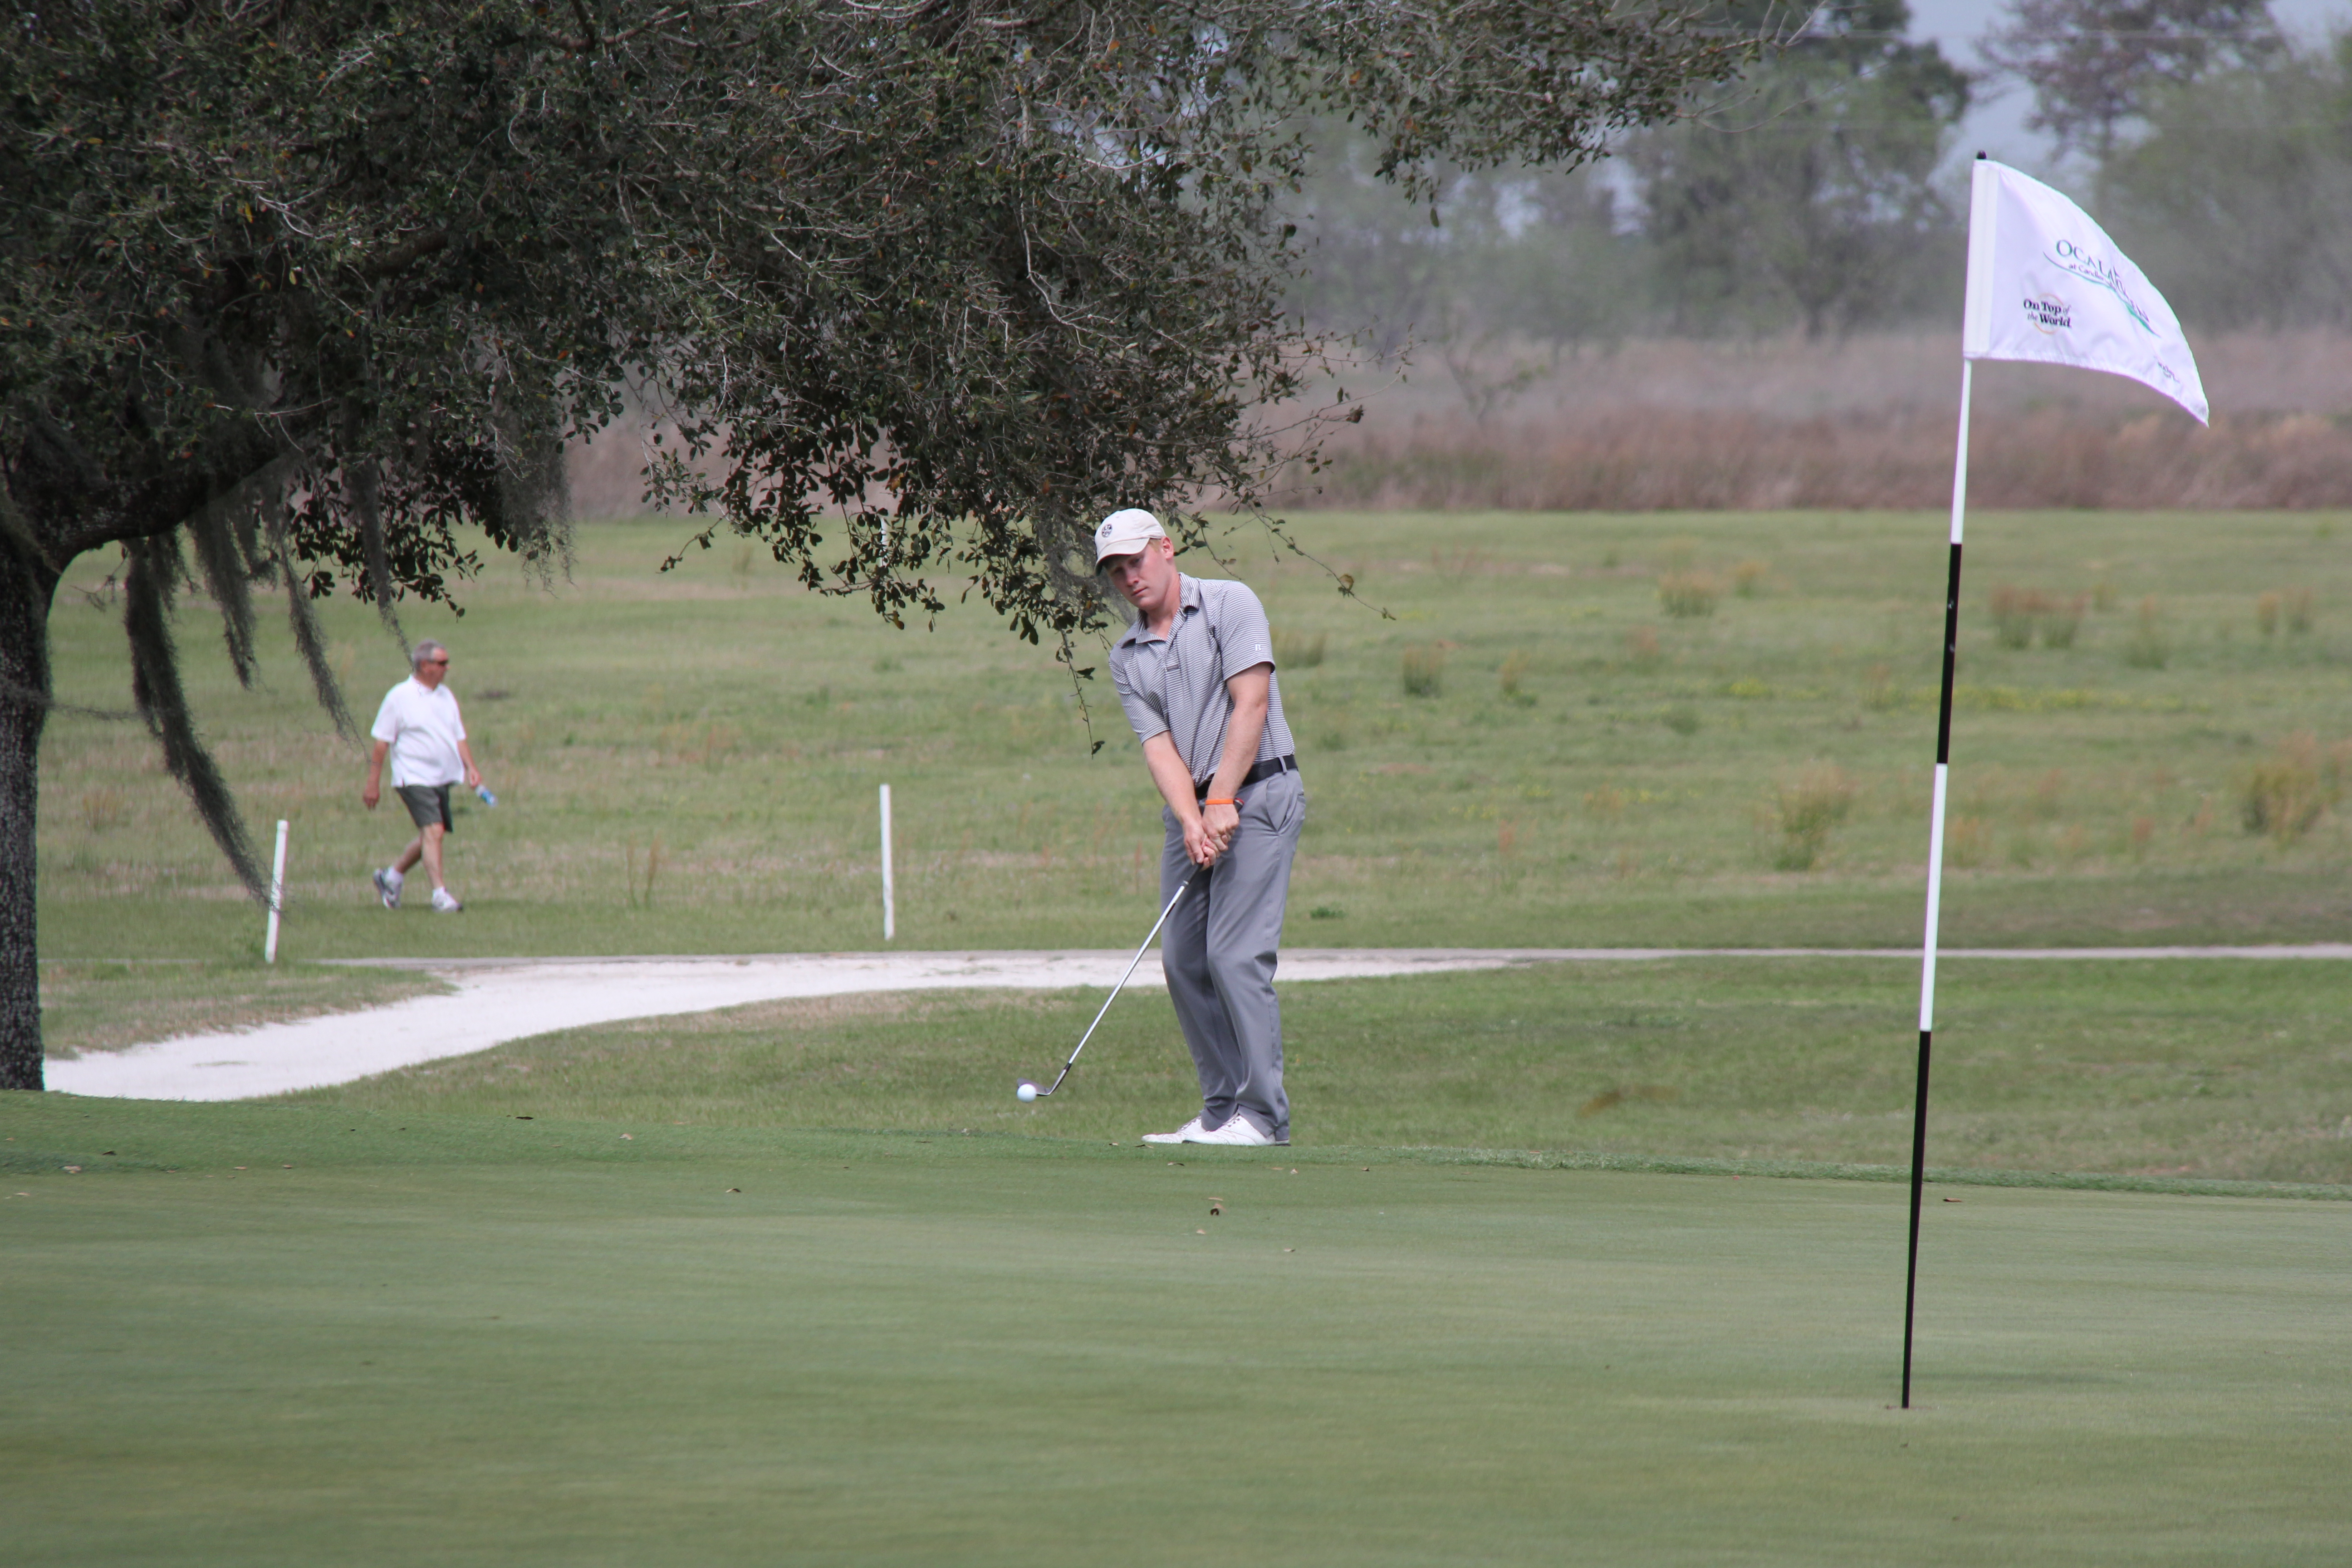 Getting to the green at the Candler Hills Golf Club Ocala Open Golf Tournament